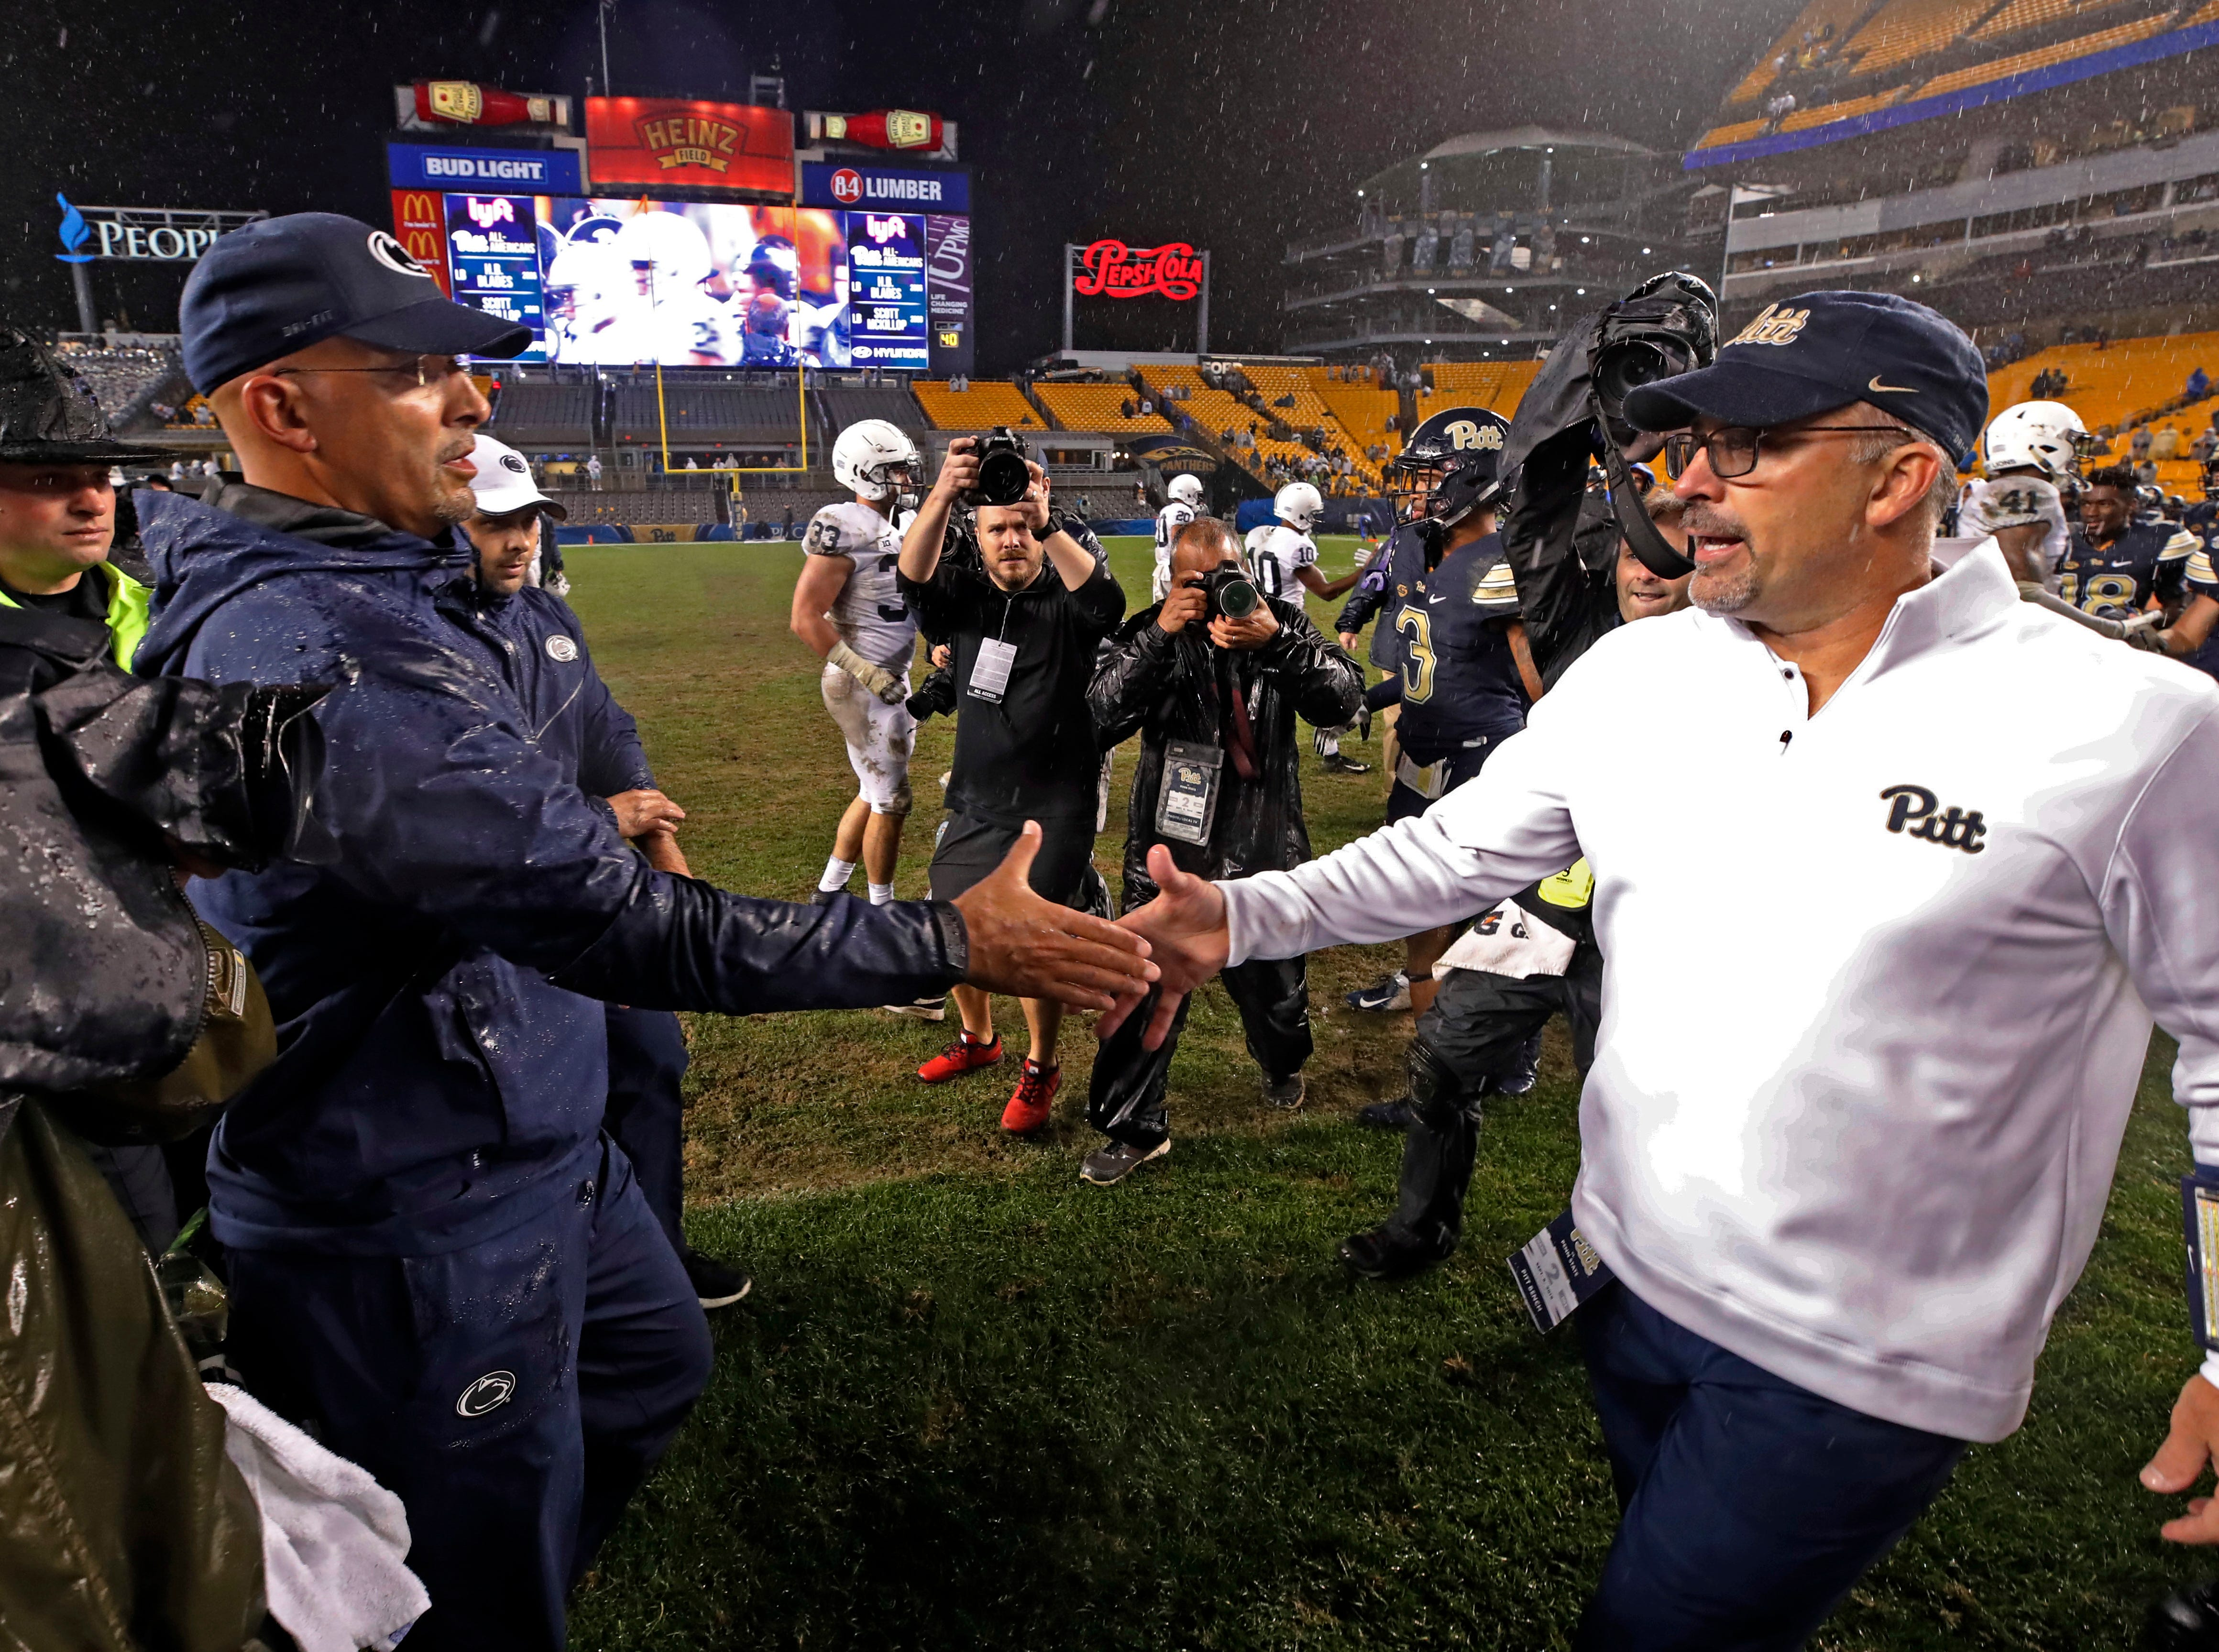 Penn State head coach James Franklin, left, shakes hands with Pittsburgh head coach Pat Narduzzi following an NCAA college football game in Pittsburgh, Saturday, Sept. 8, 2018. Penn State won 51-6.